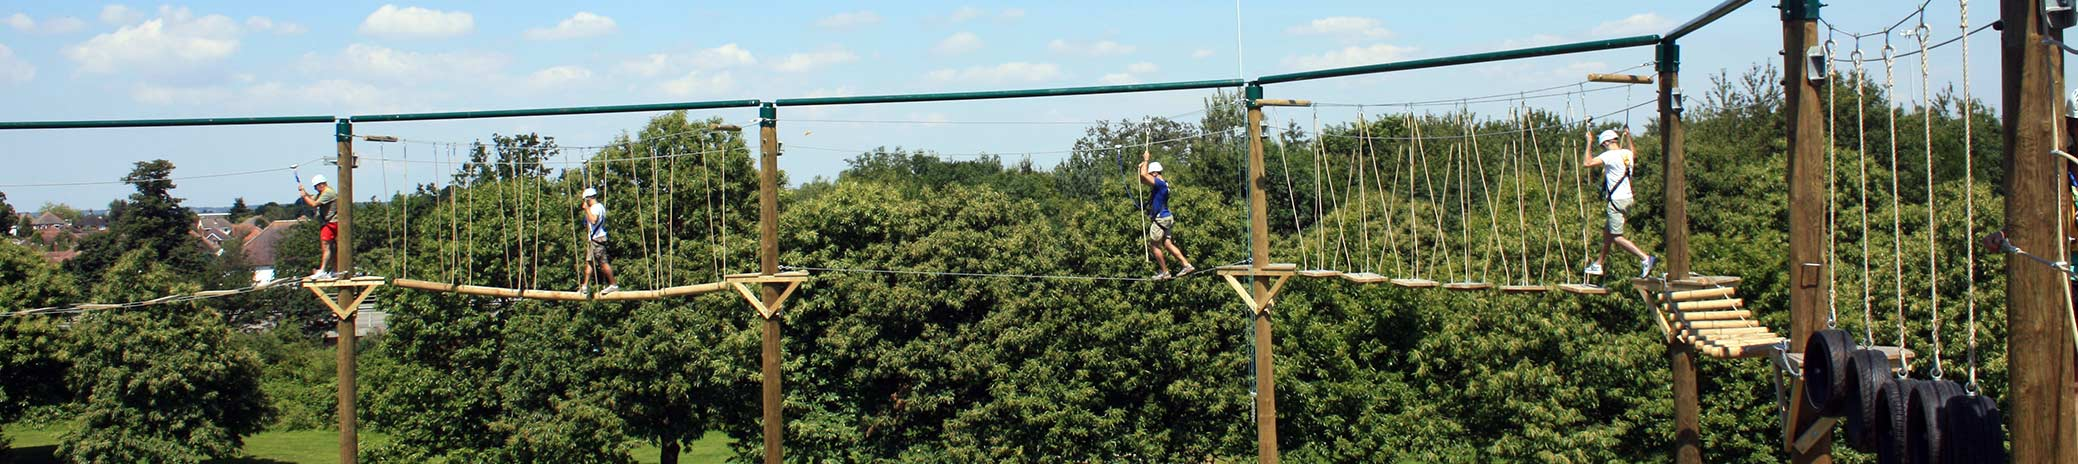 Days Out In Bournemouth Outdoor Activities Altitude High Ropes Adventure